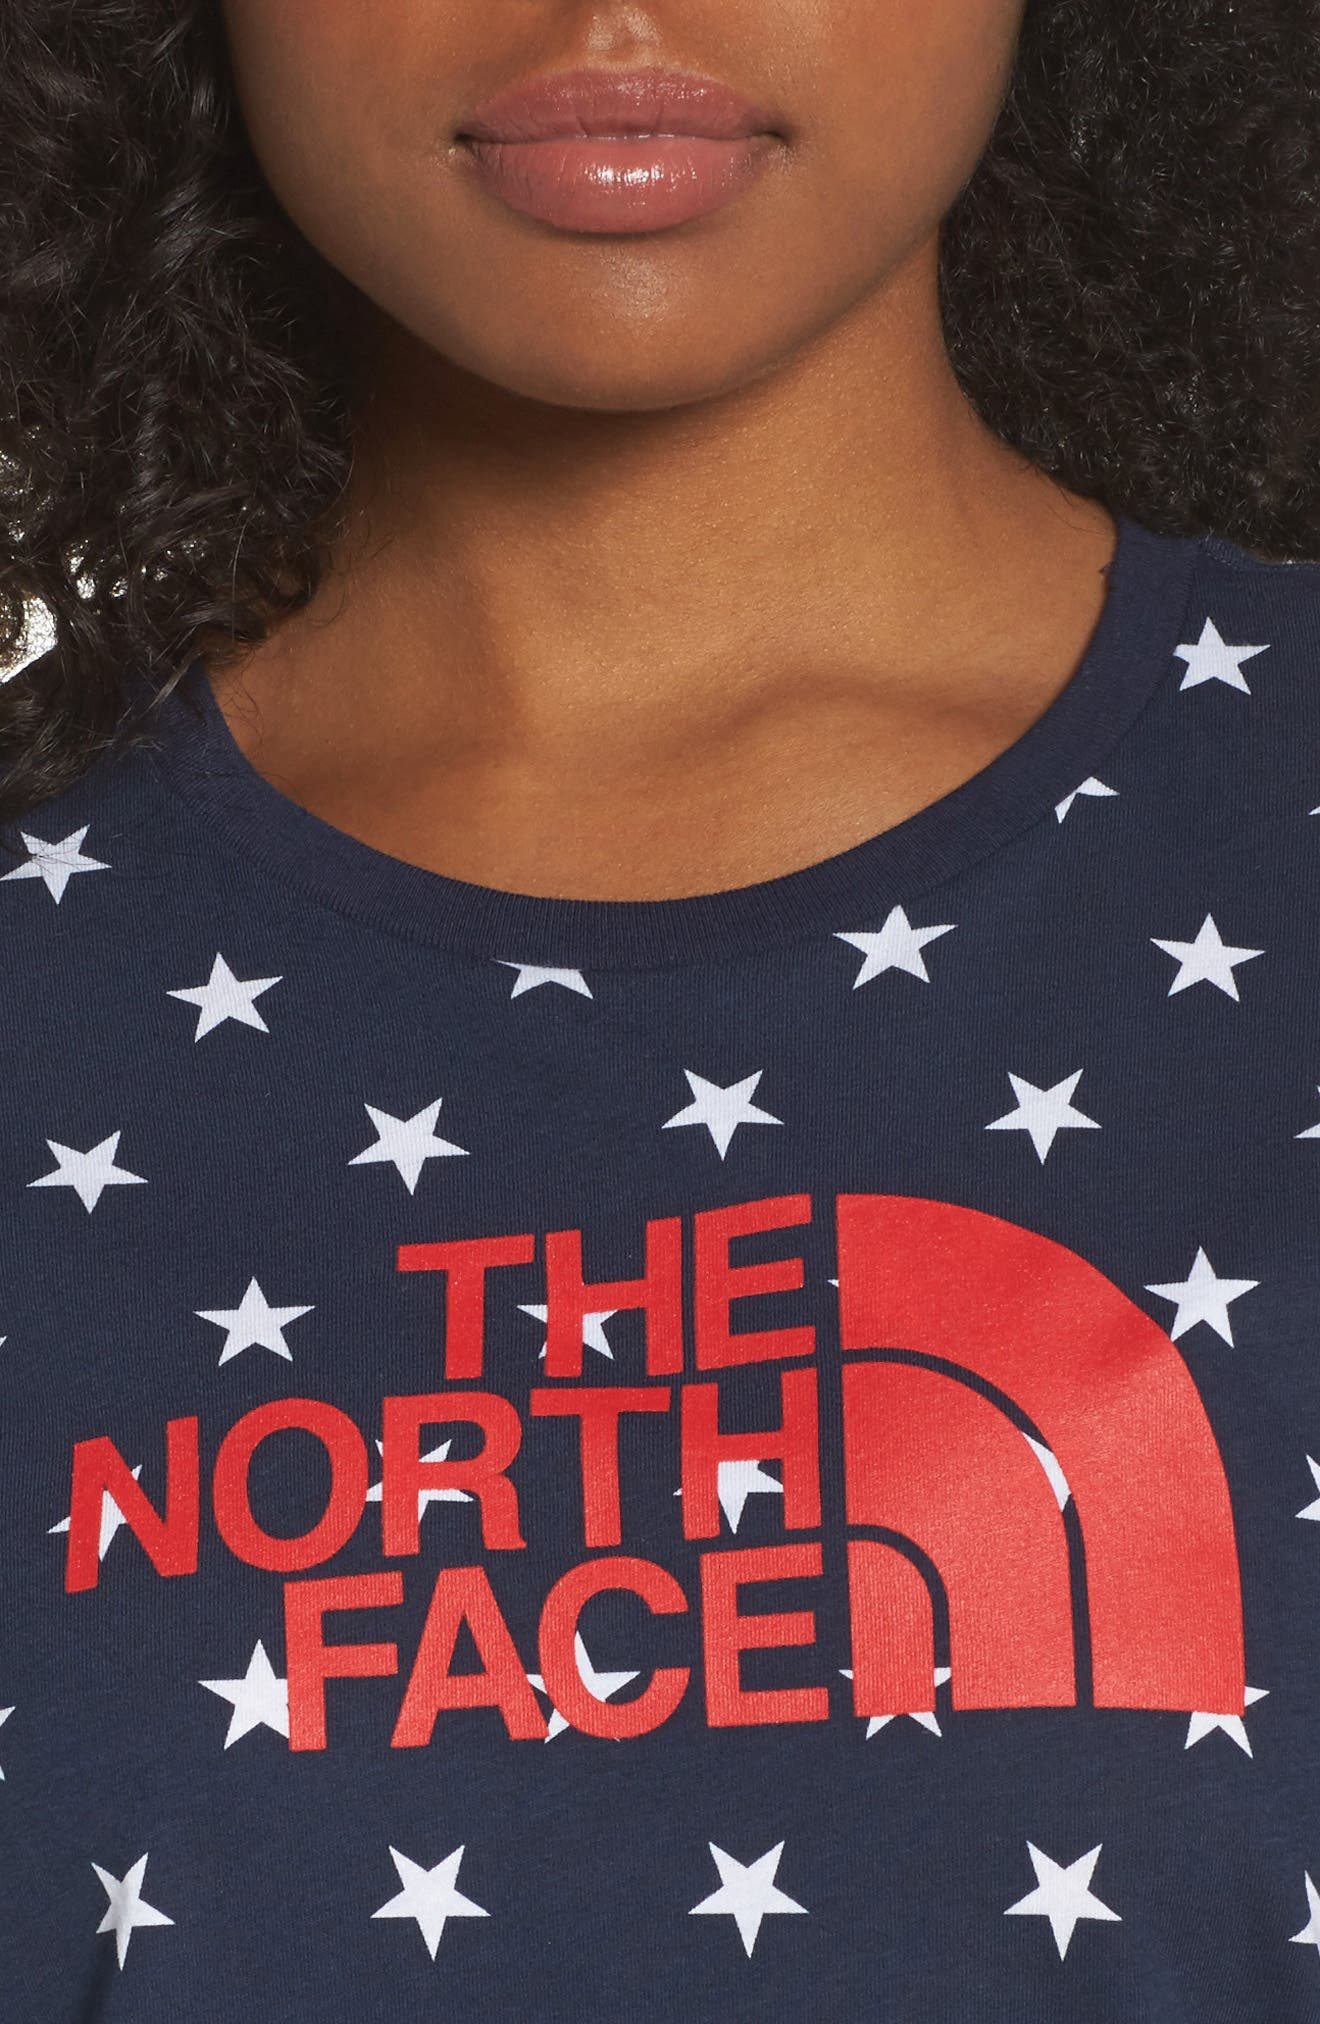 International Collection Tee,                             Alternate thumbnail 4, color,                             Cosmic Blue Star Print